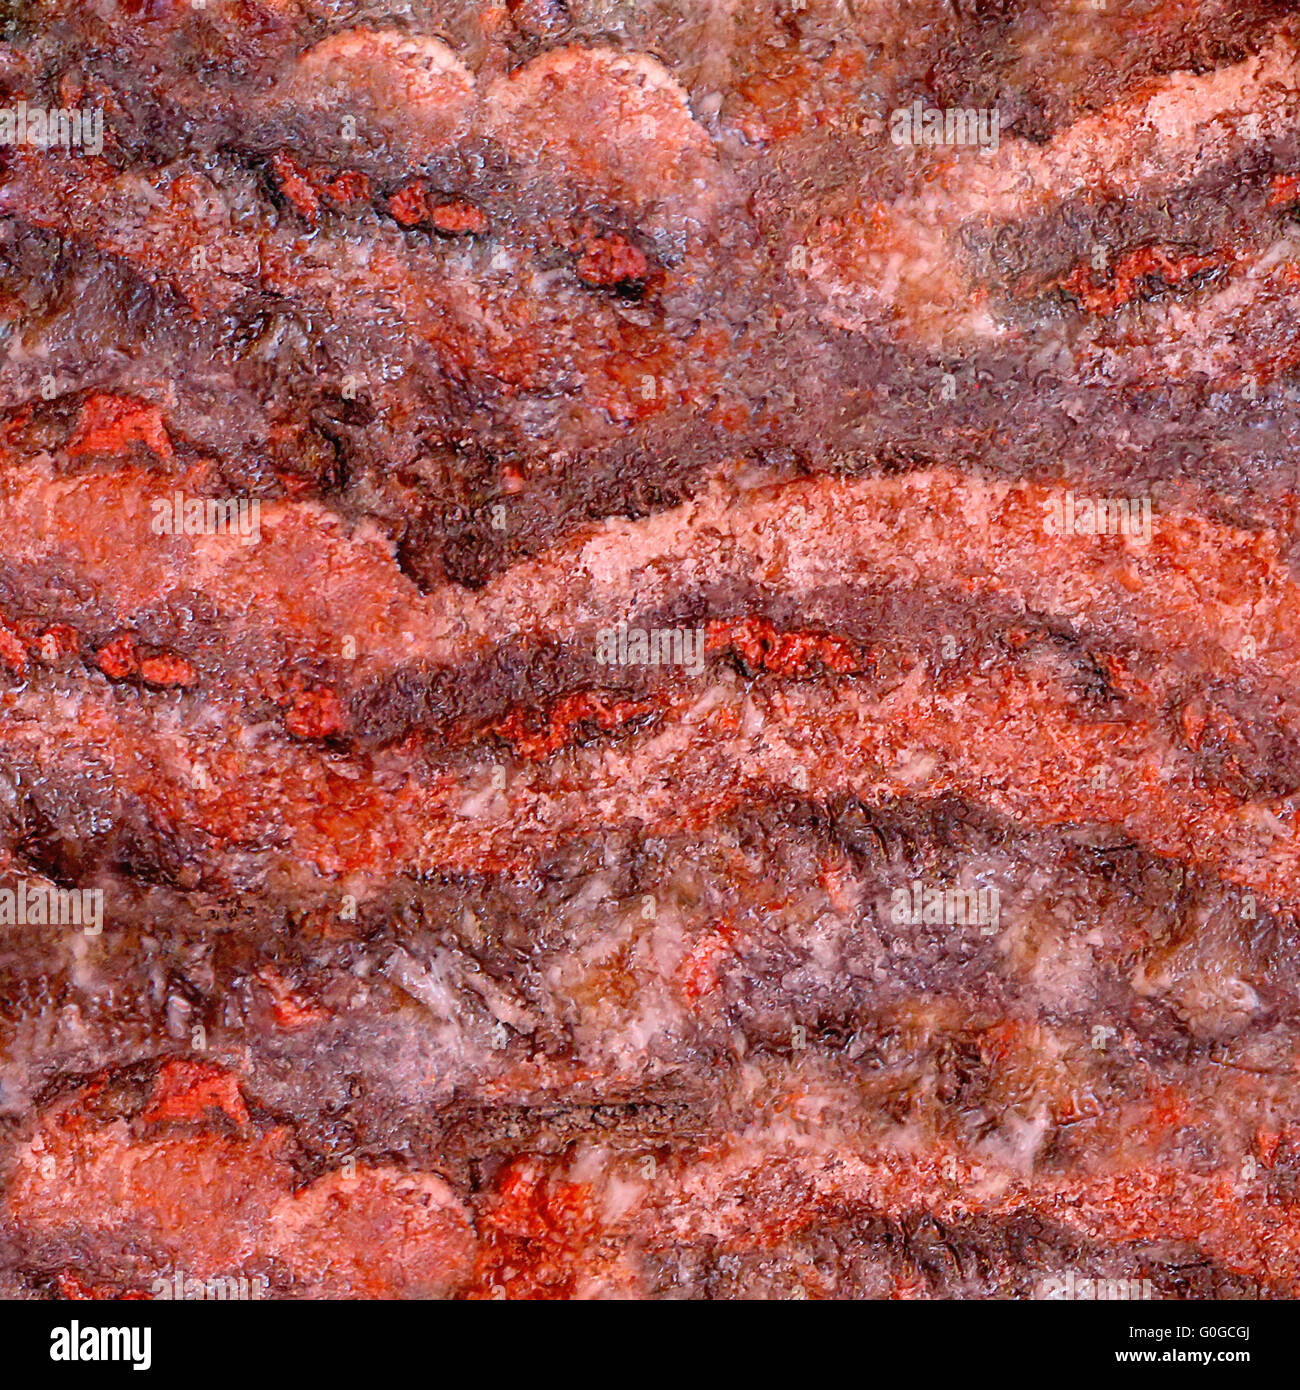 Image of colorful texture - Stock Image